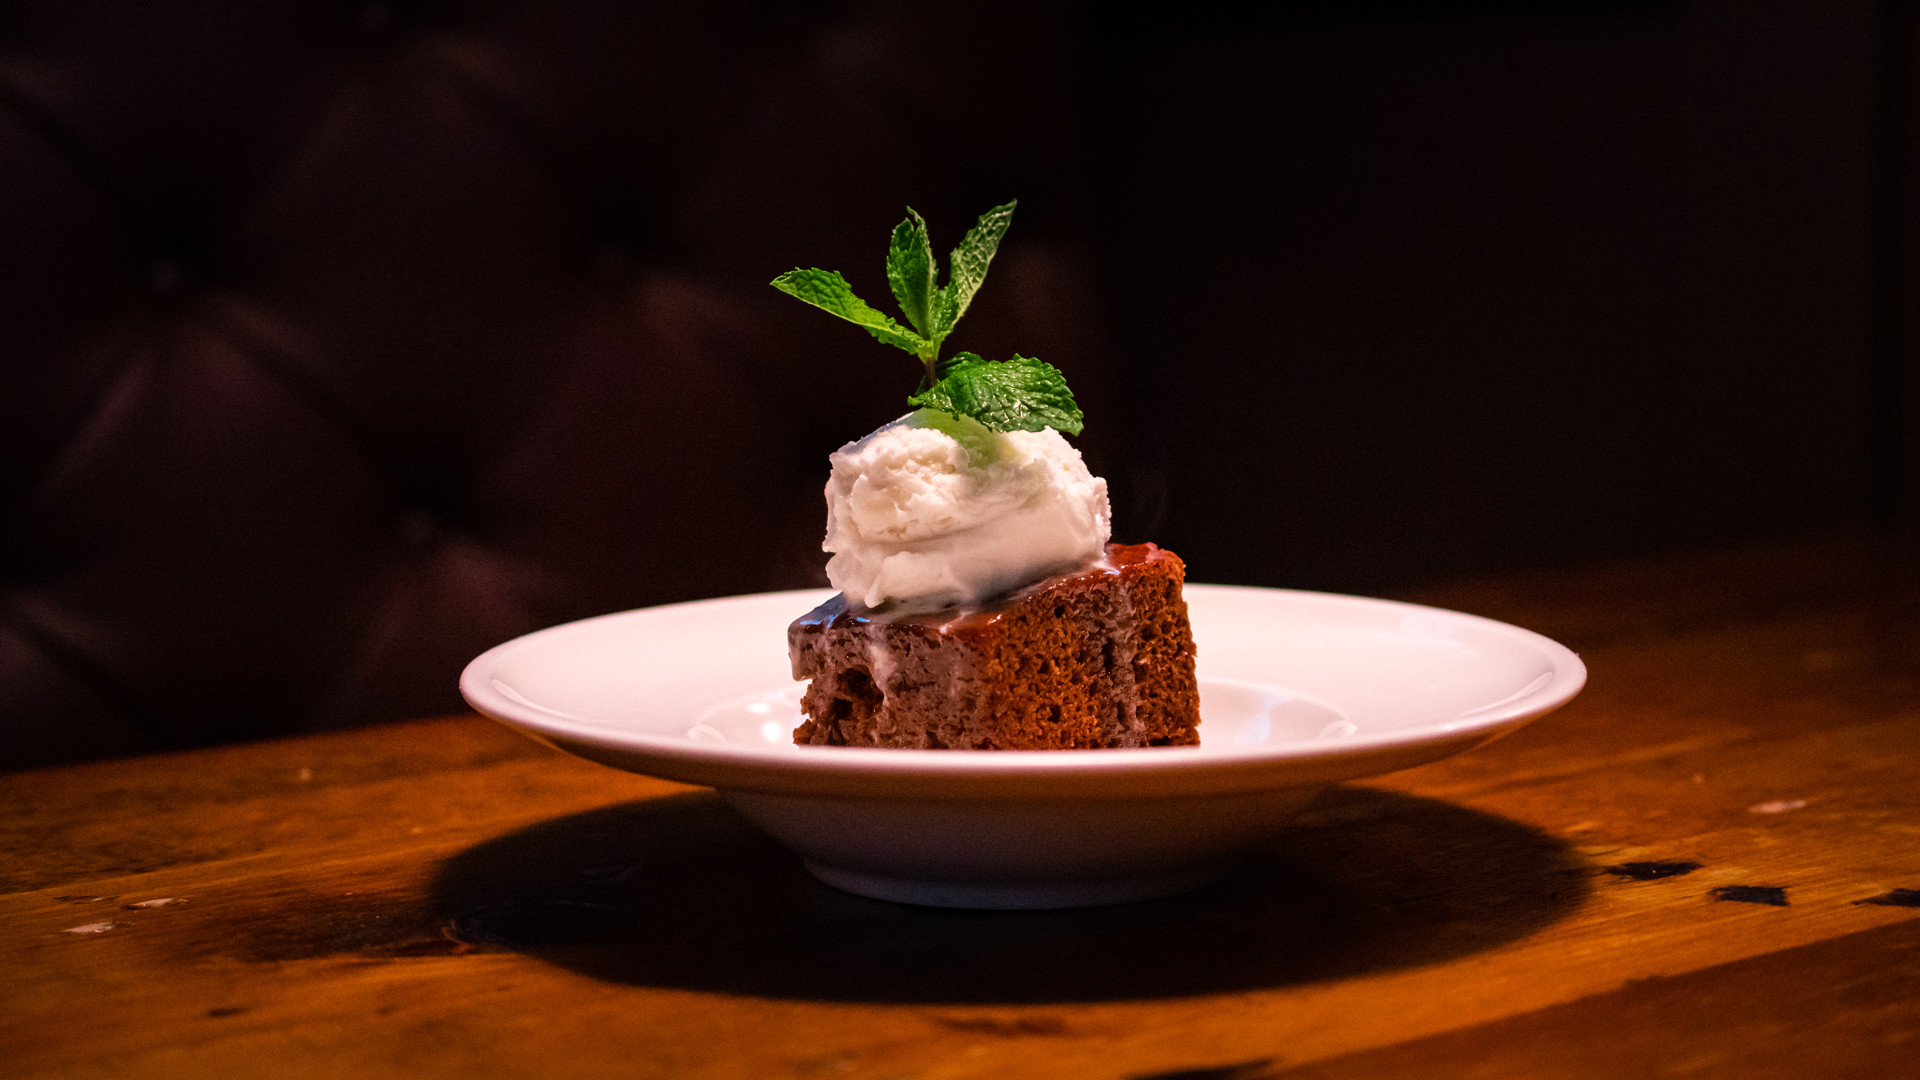 The best new restaurants in Toronto | A chocolate dessert at Prohibition Social House